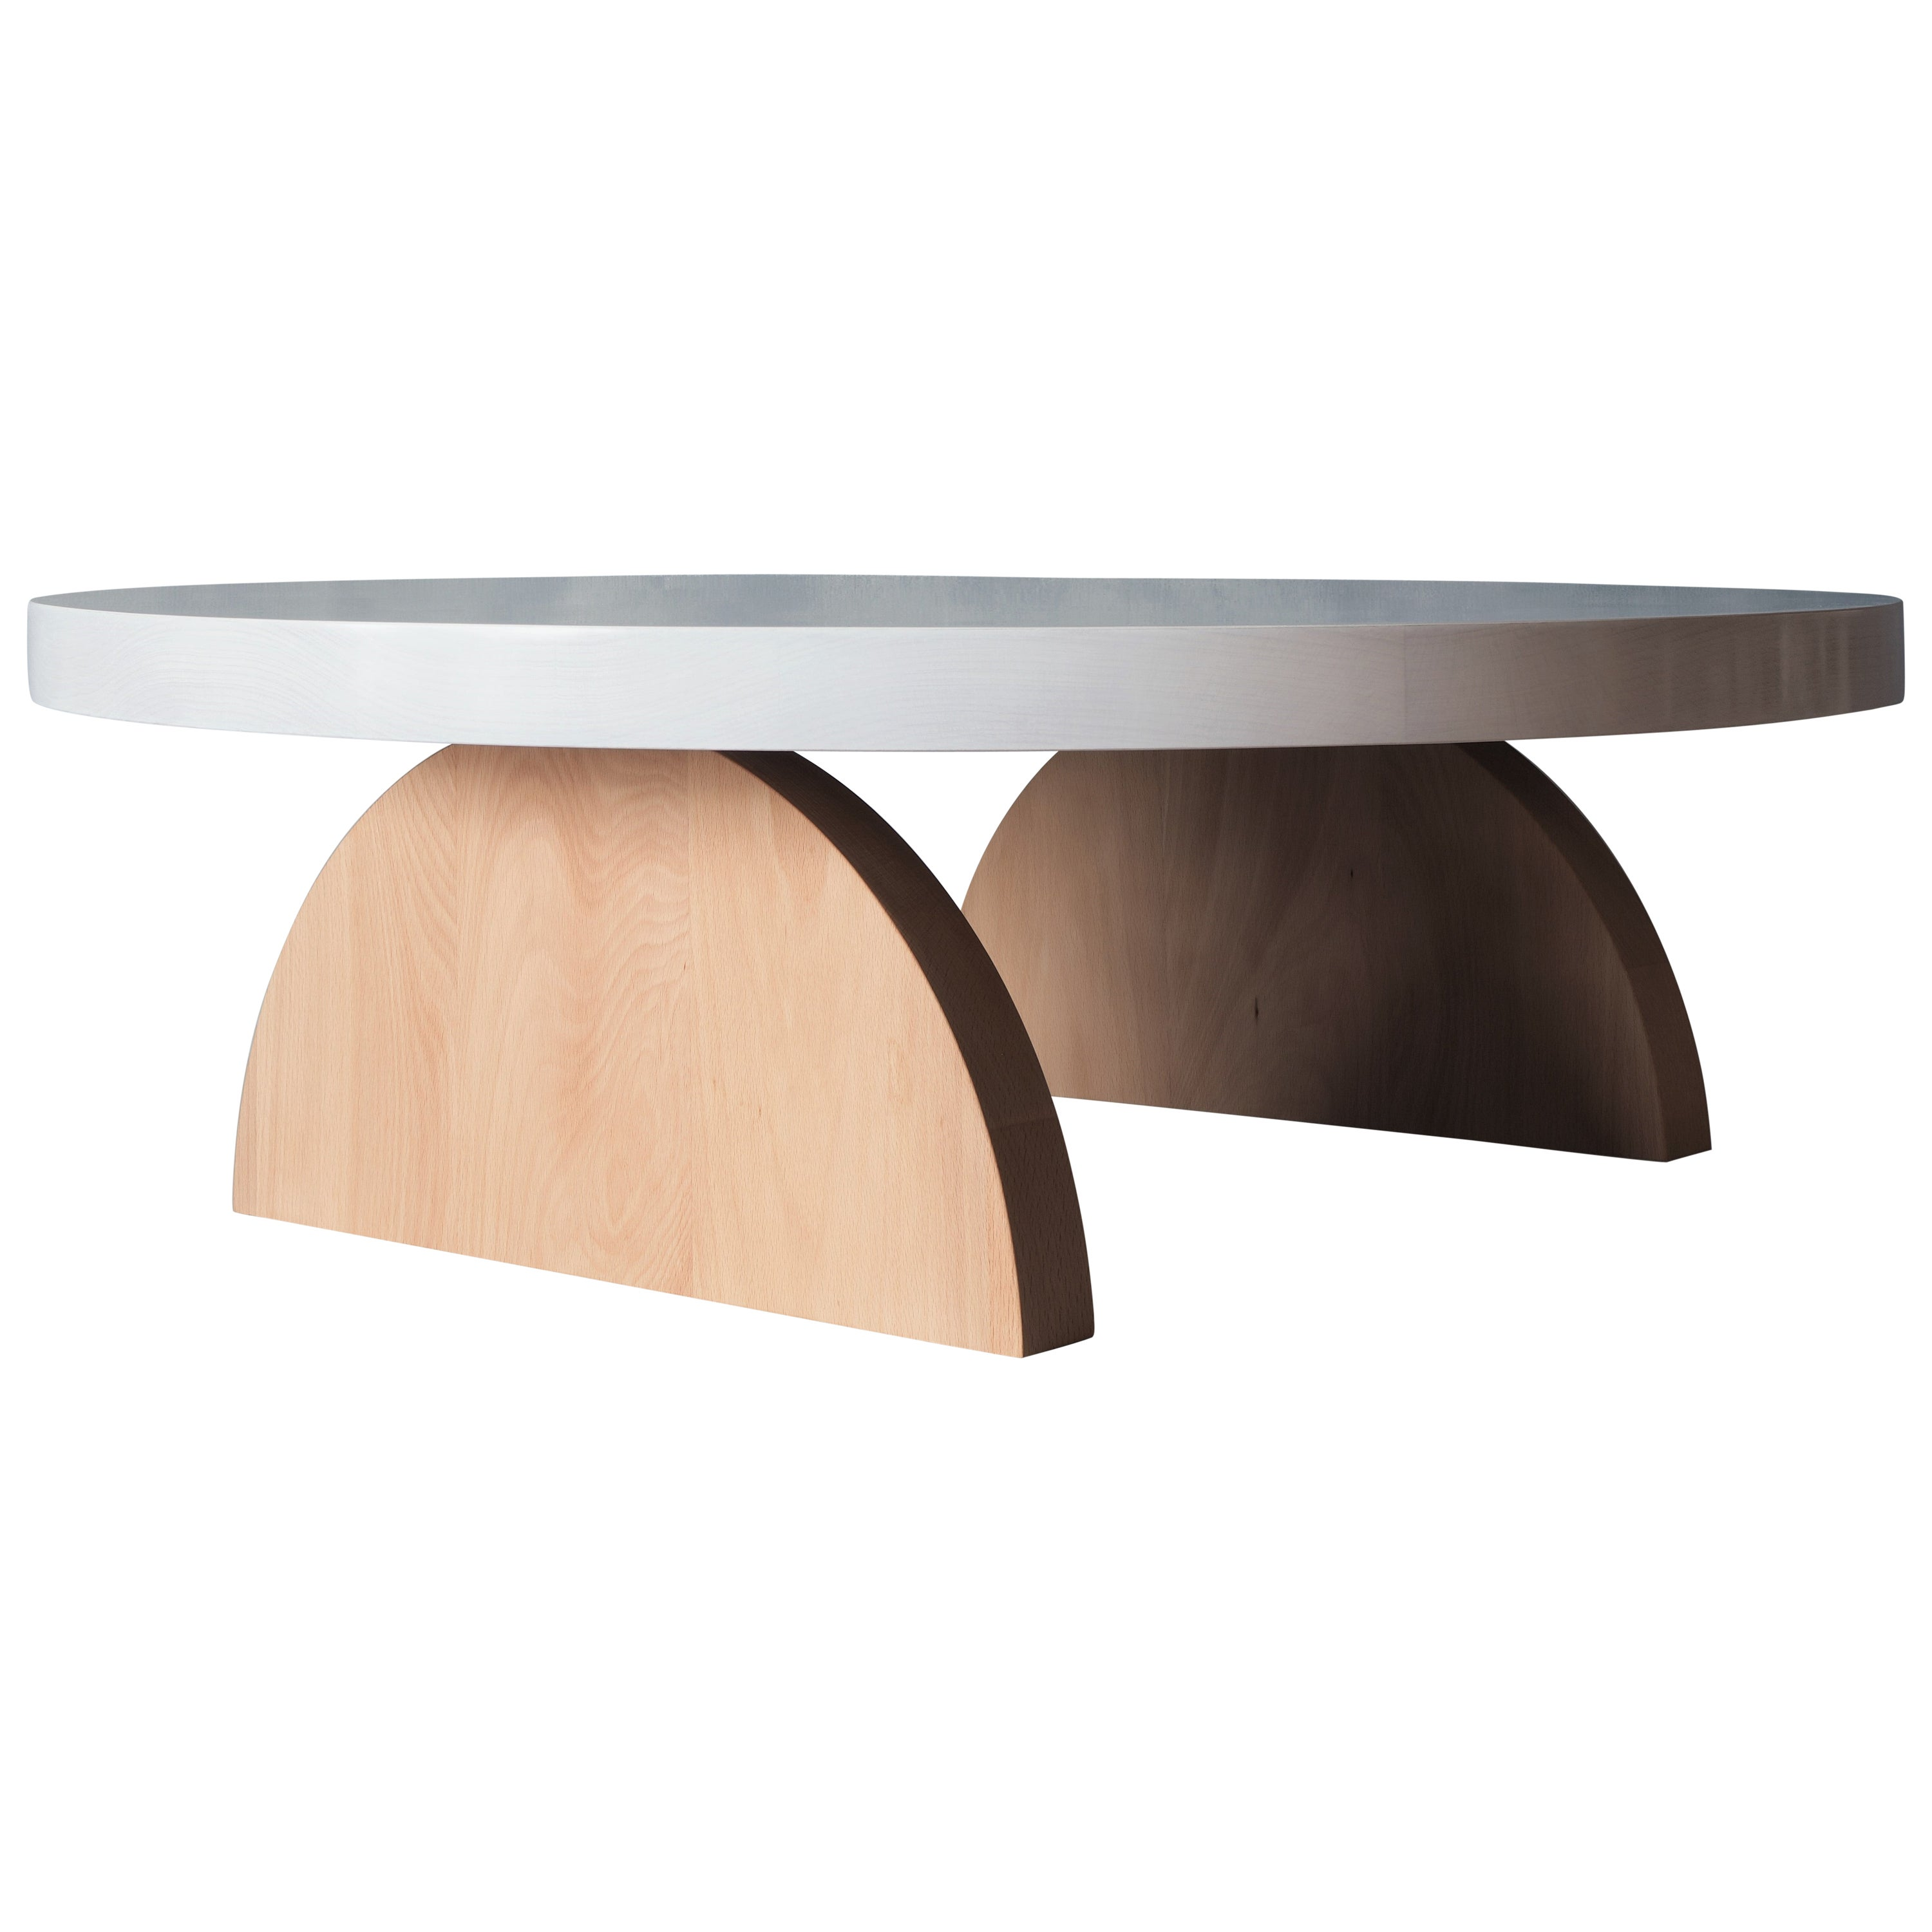 Low Round Coffee Table by MSJ Furniture Studio